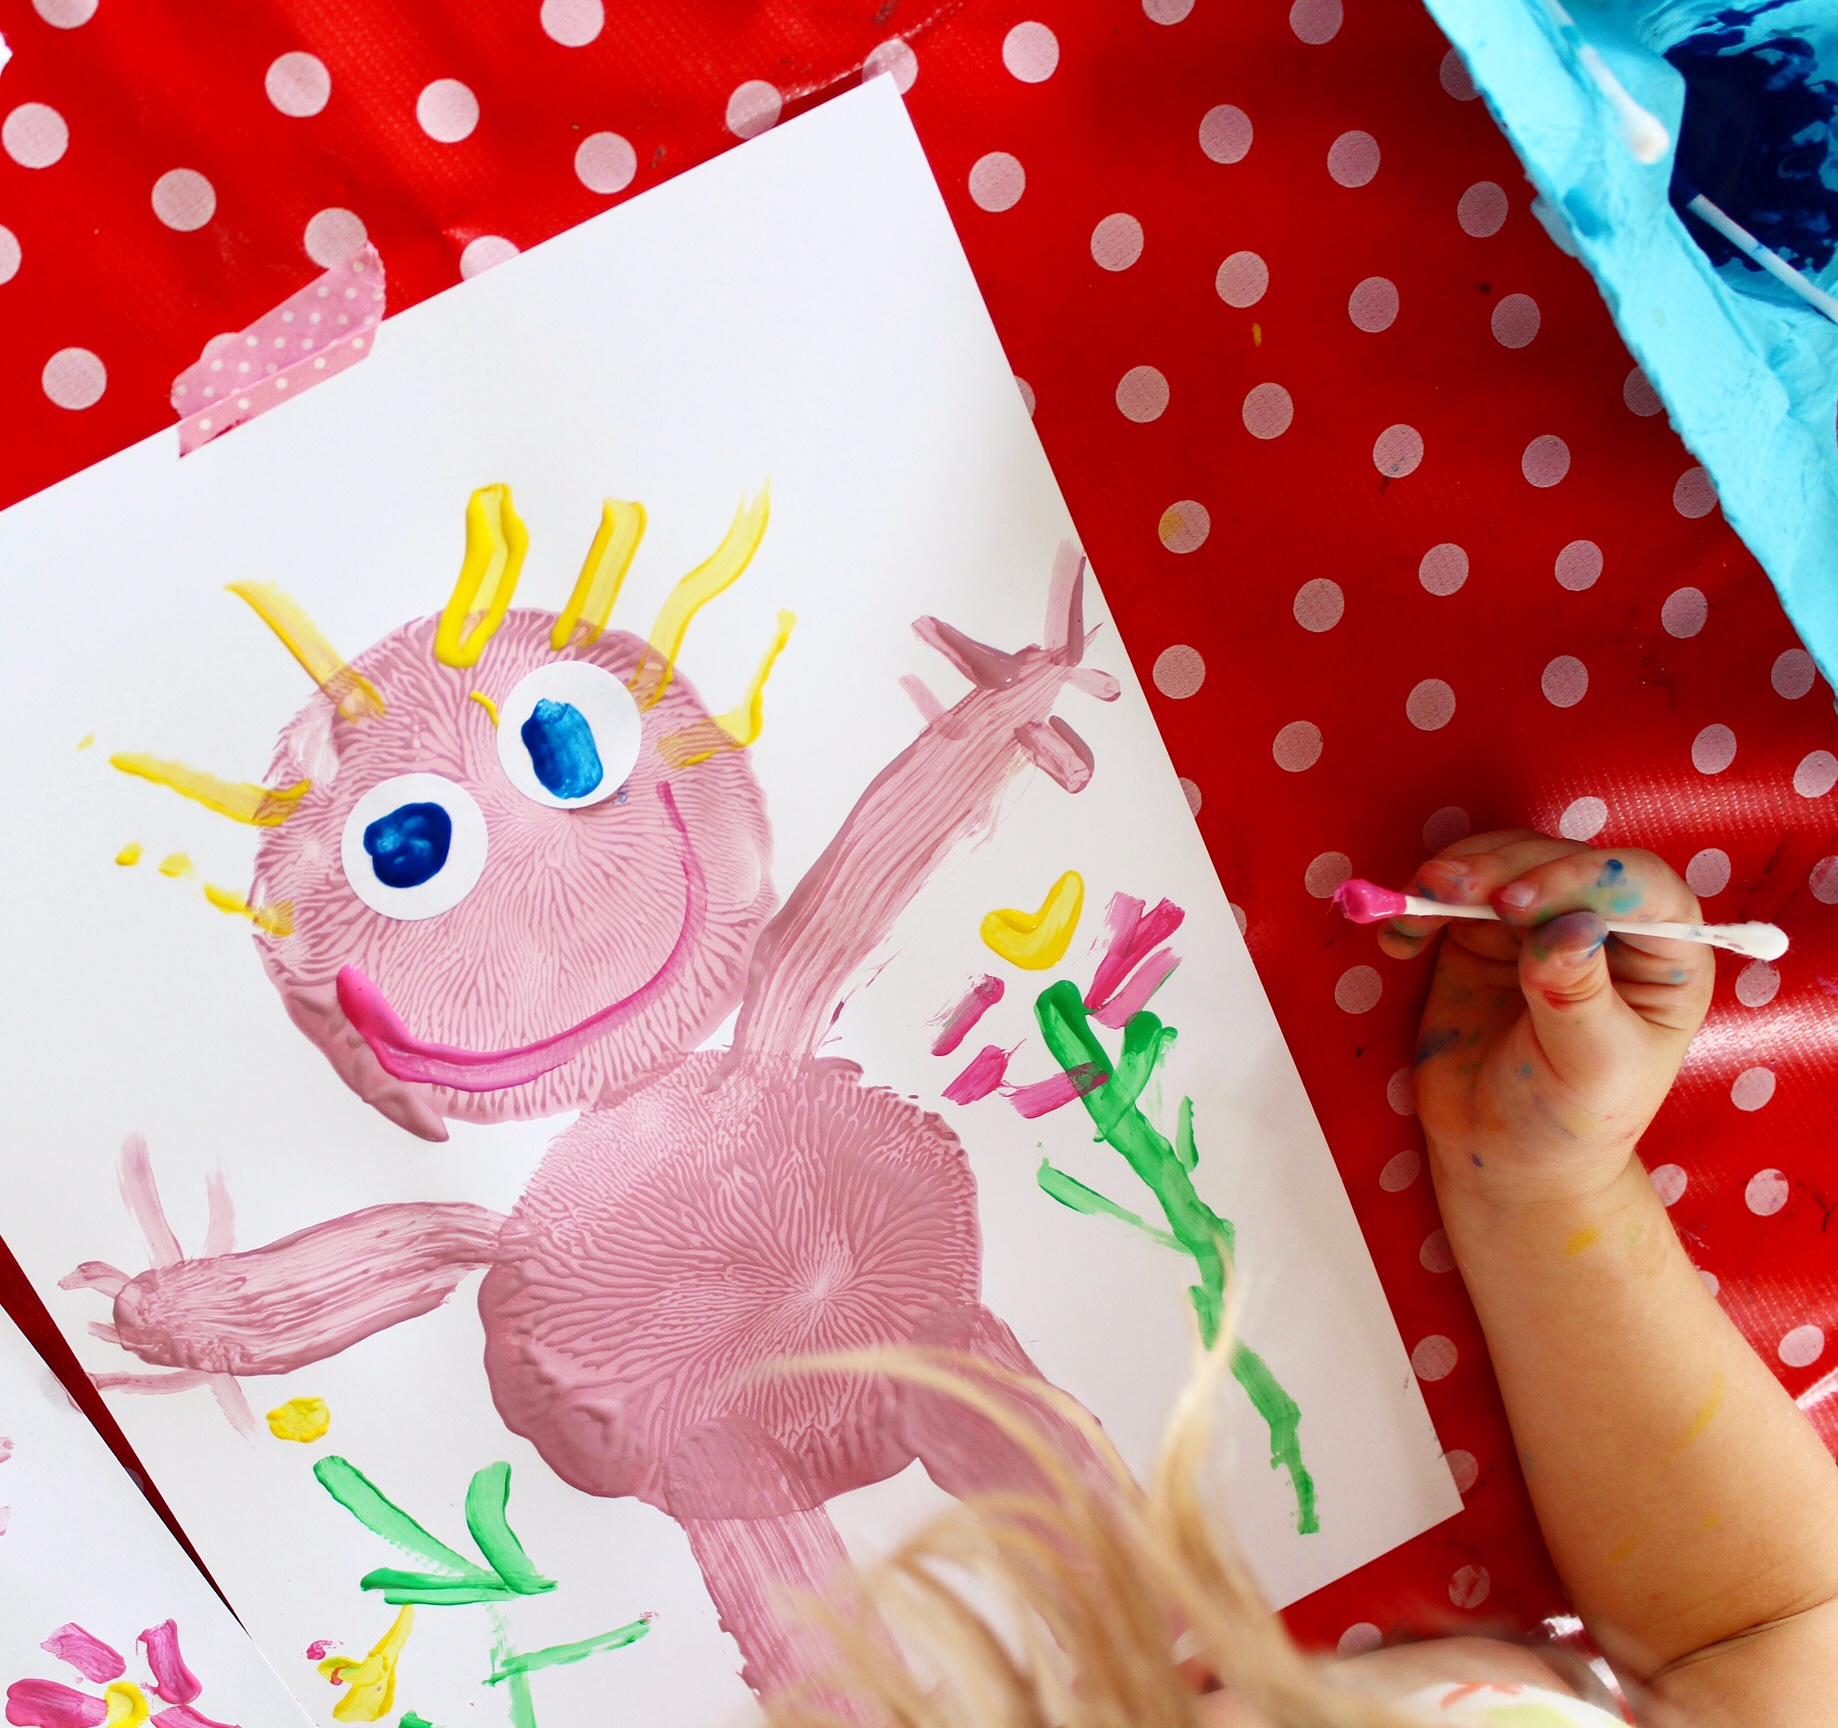 Kids craft activities for toddlers | simple self-portrait painting activity for kids